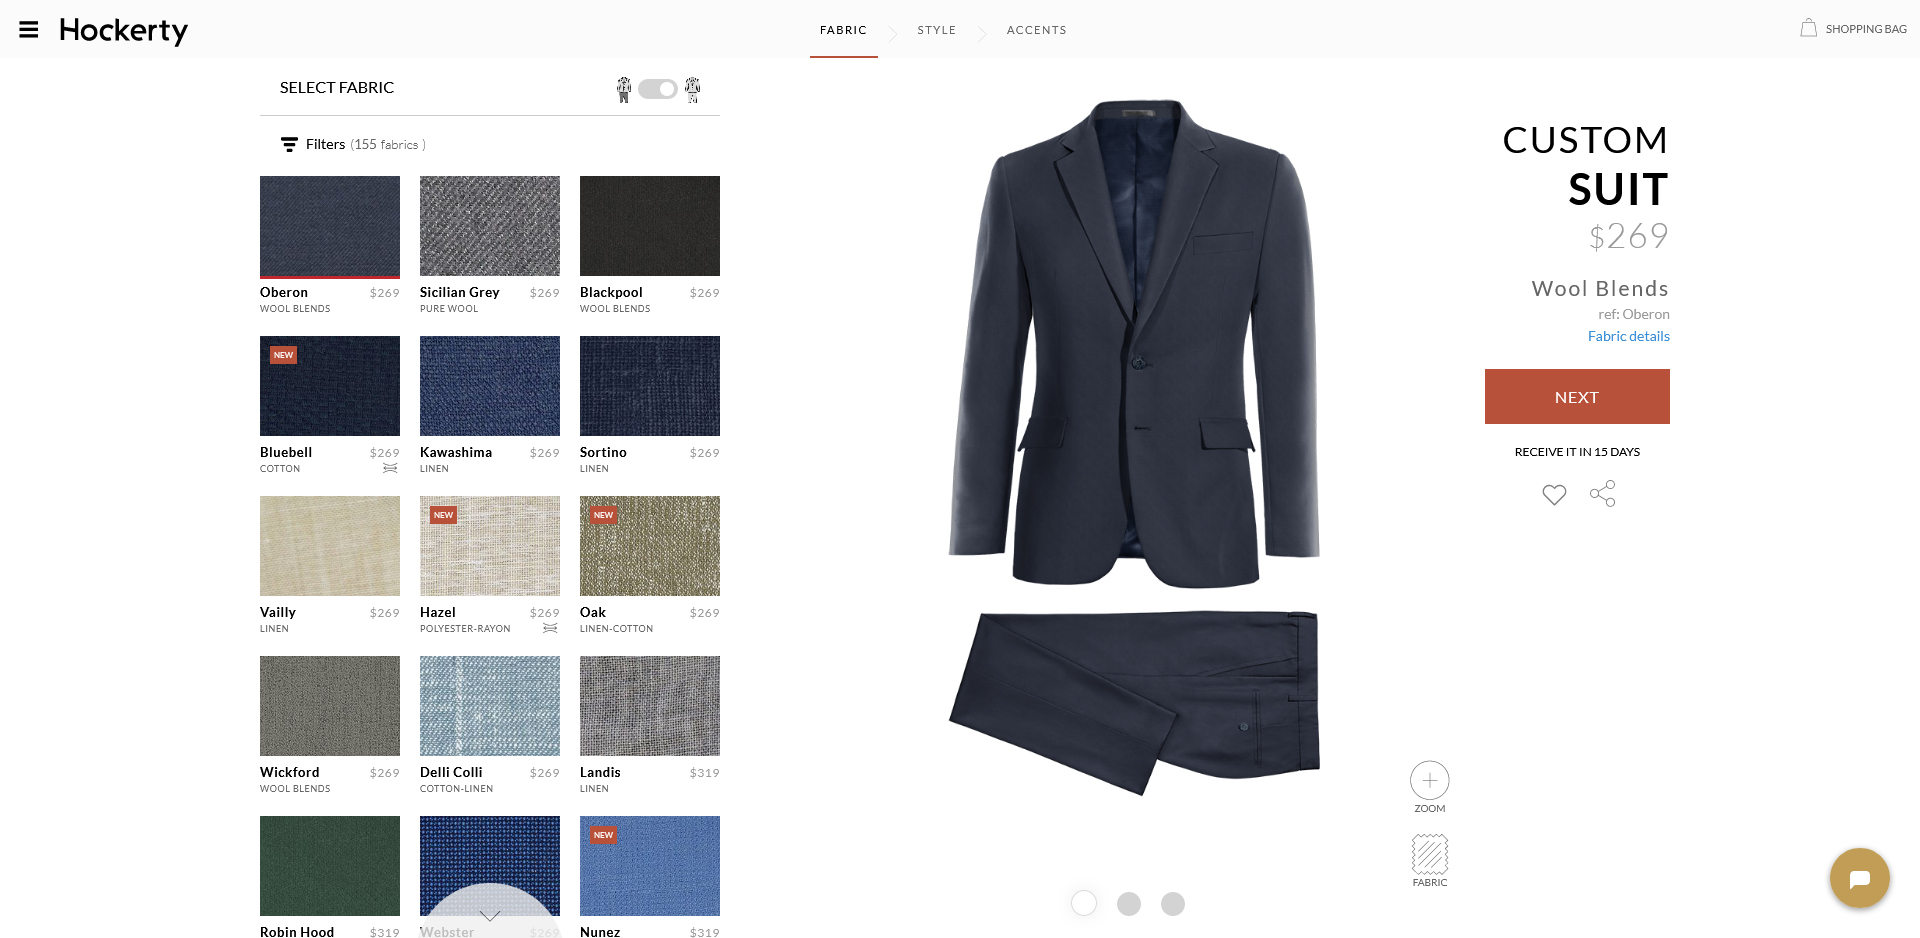 Hockerty made-to-measure suit fabric options